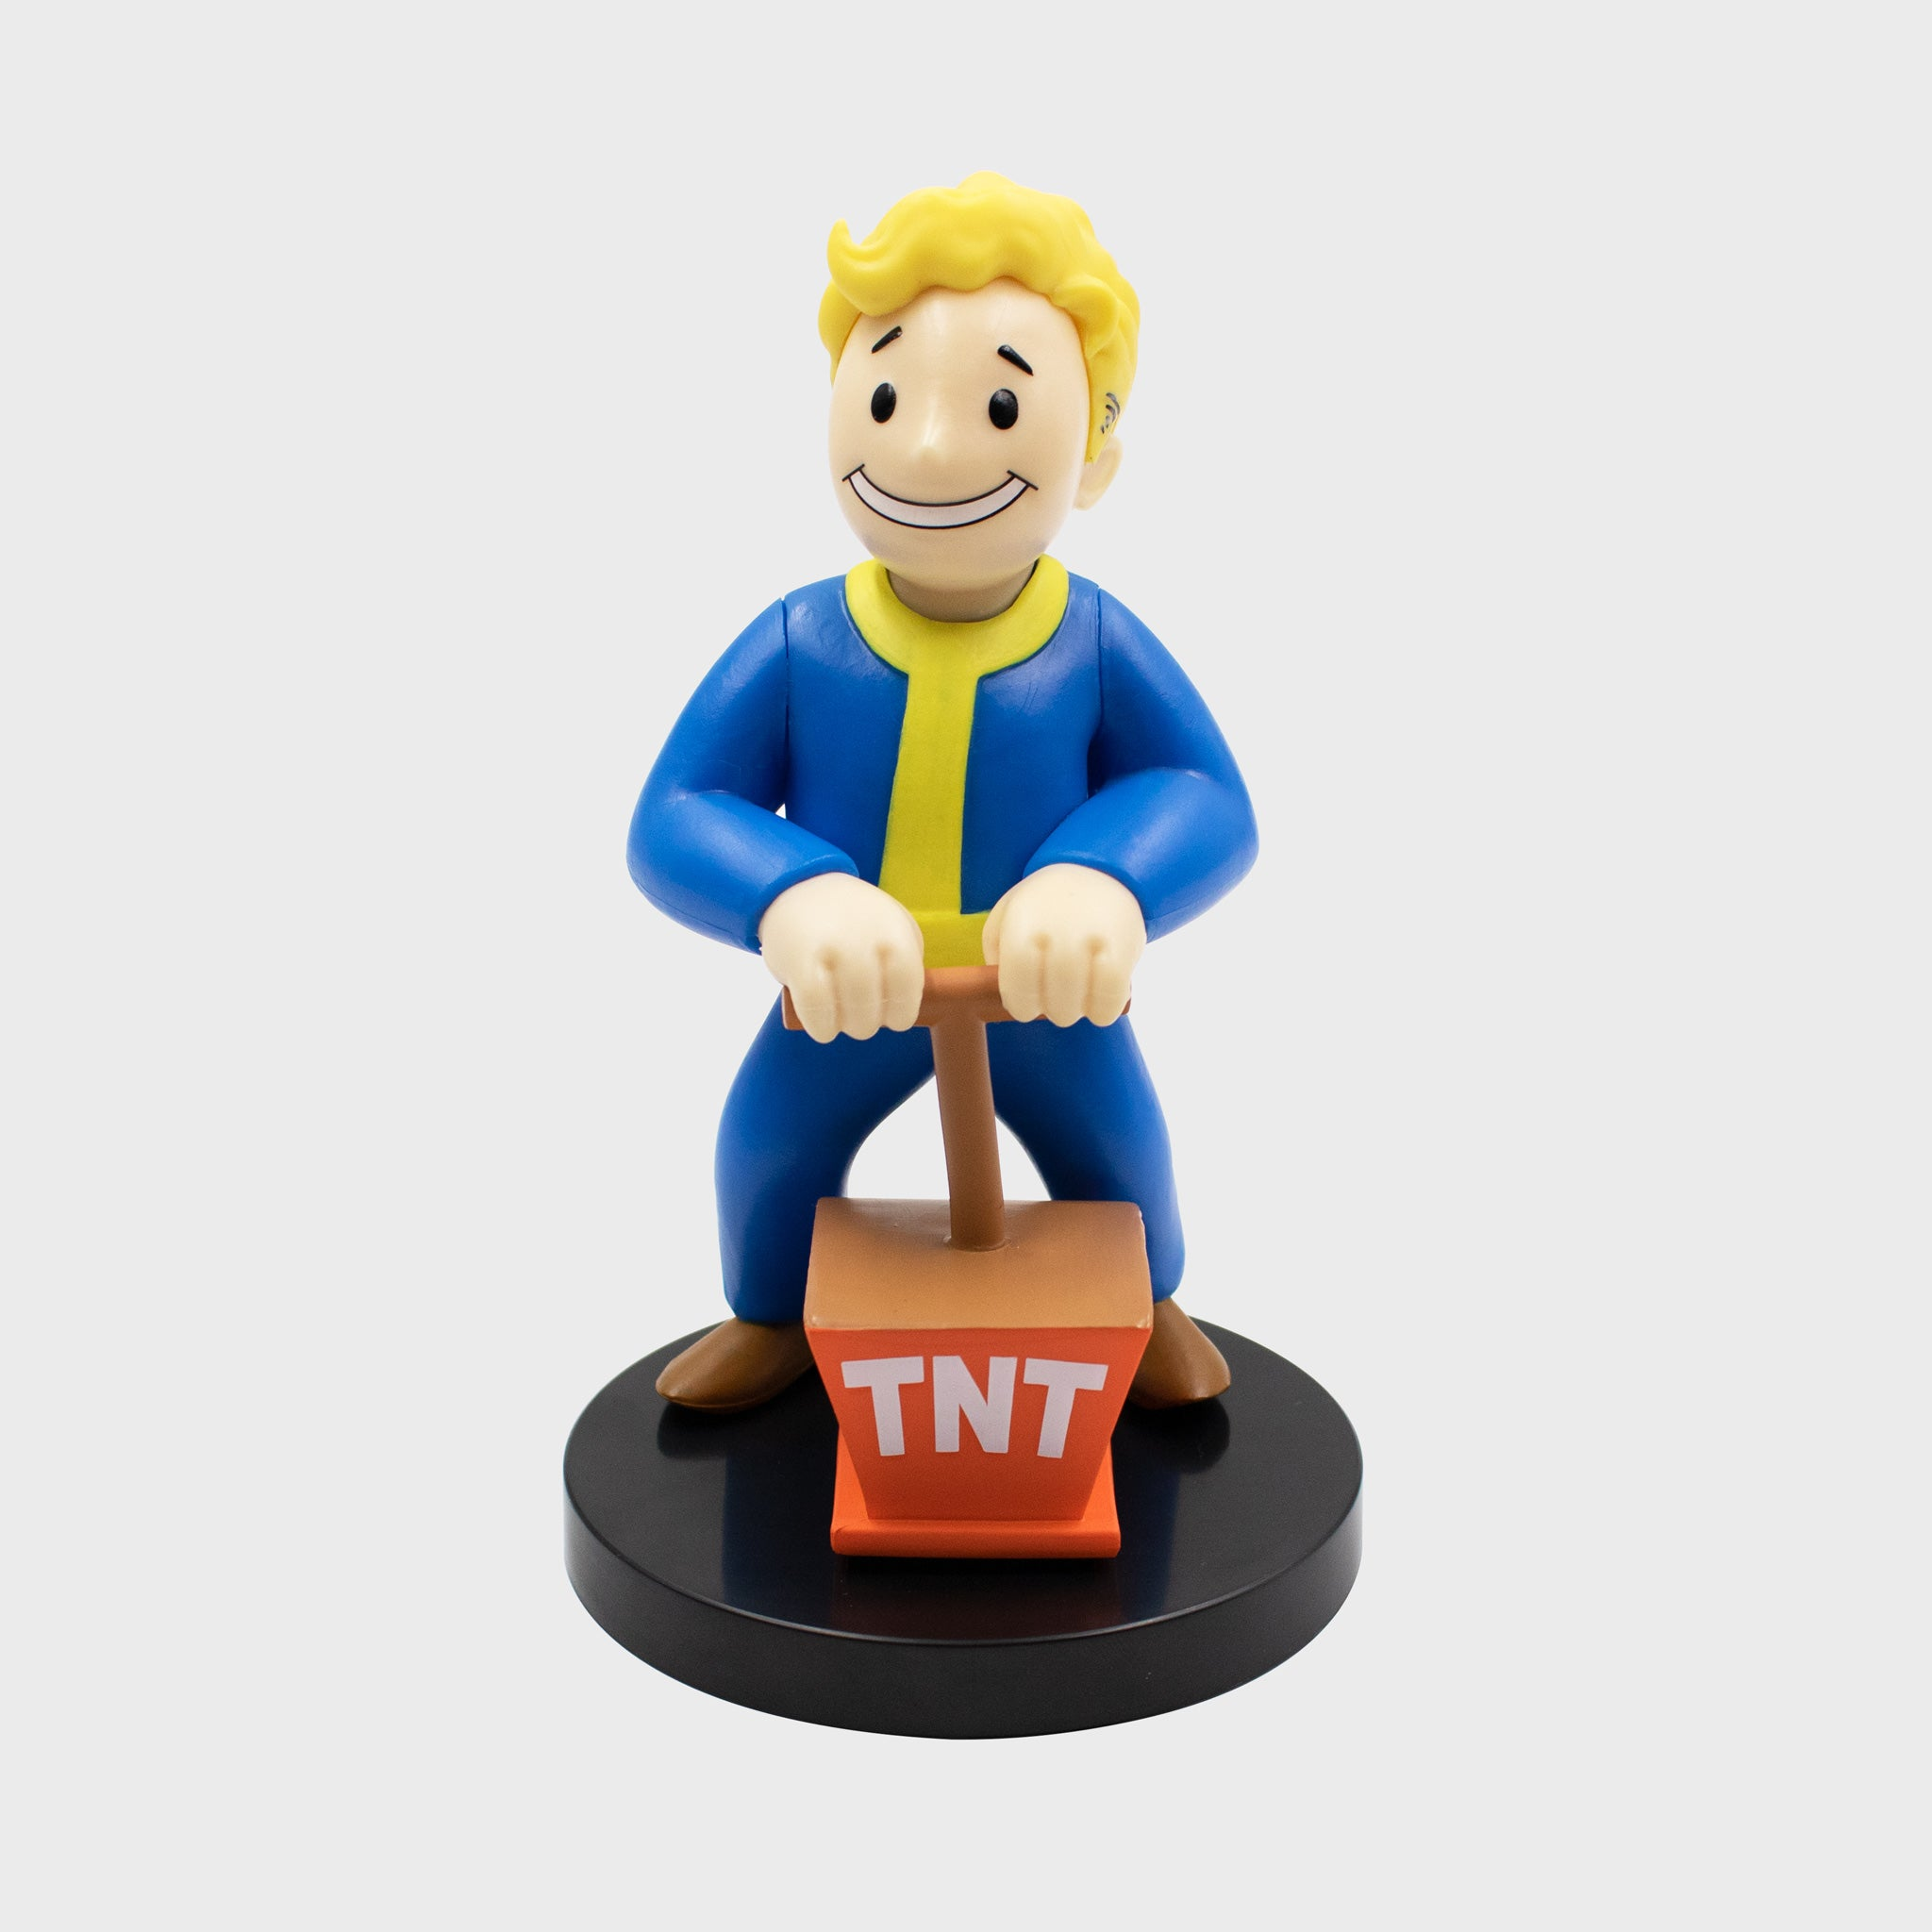 vault buy demolition expert tnt fallout vinyl figure culturefly collectible